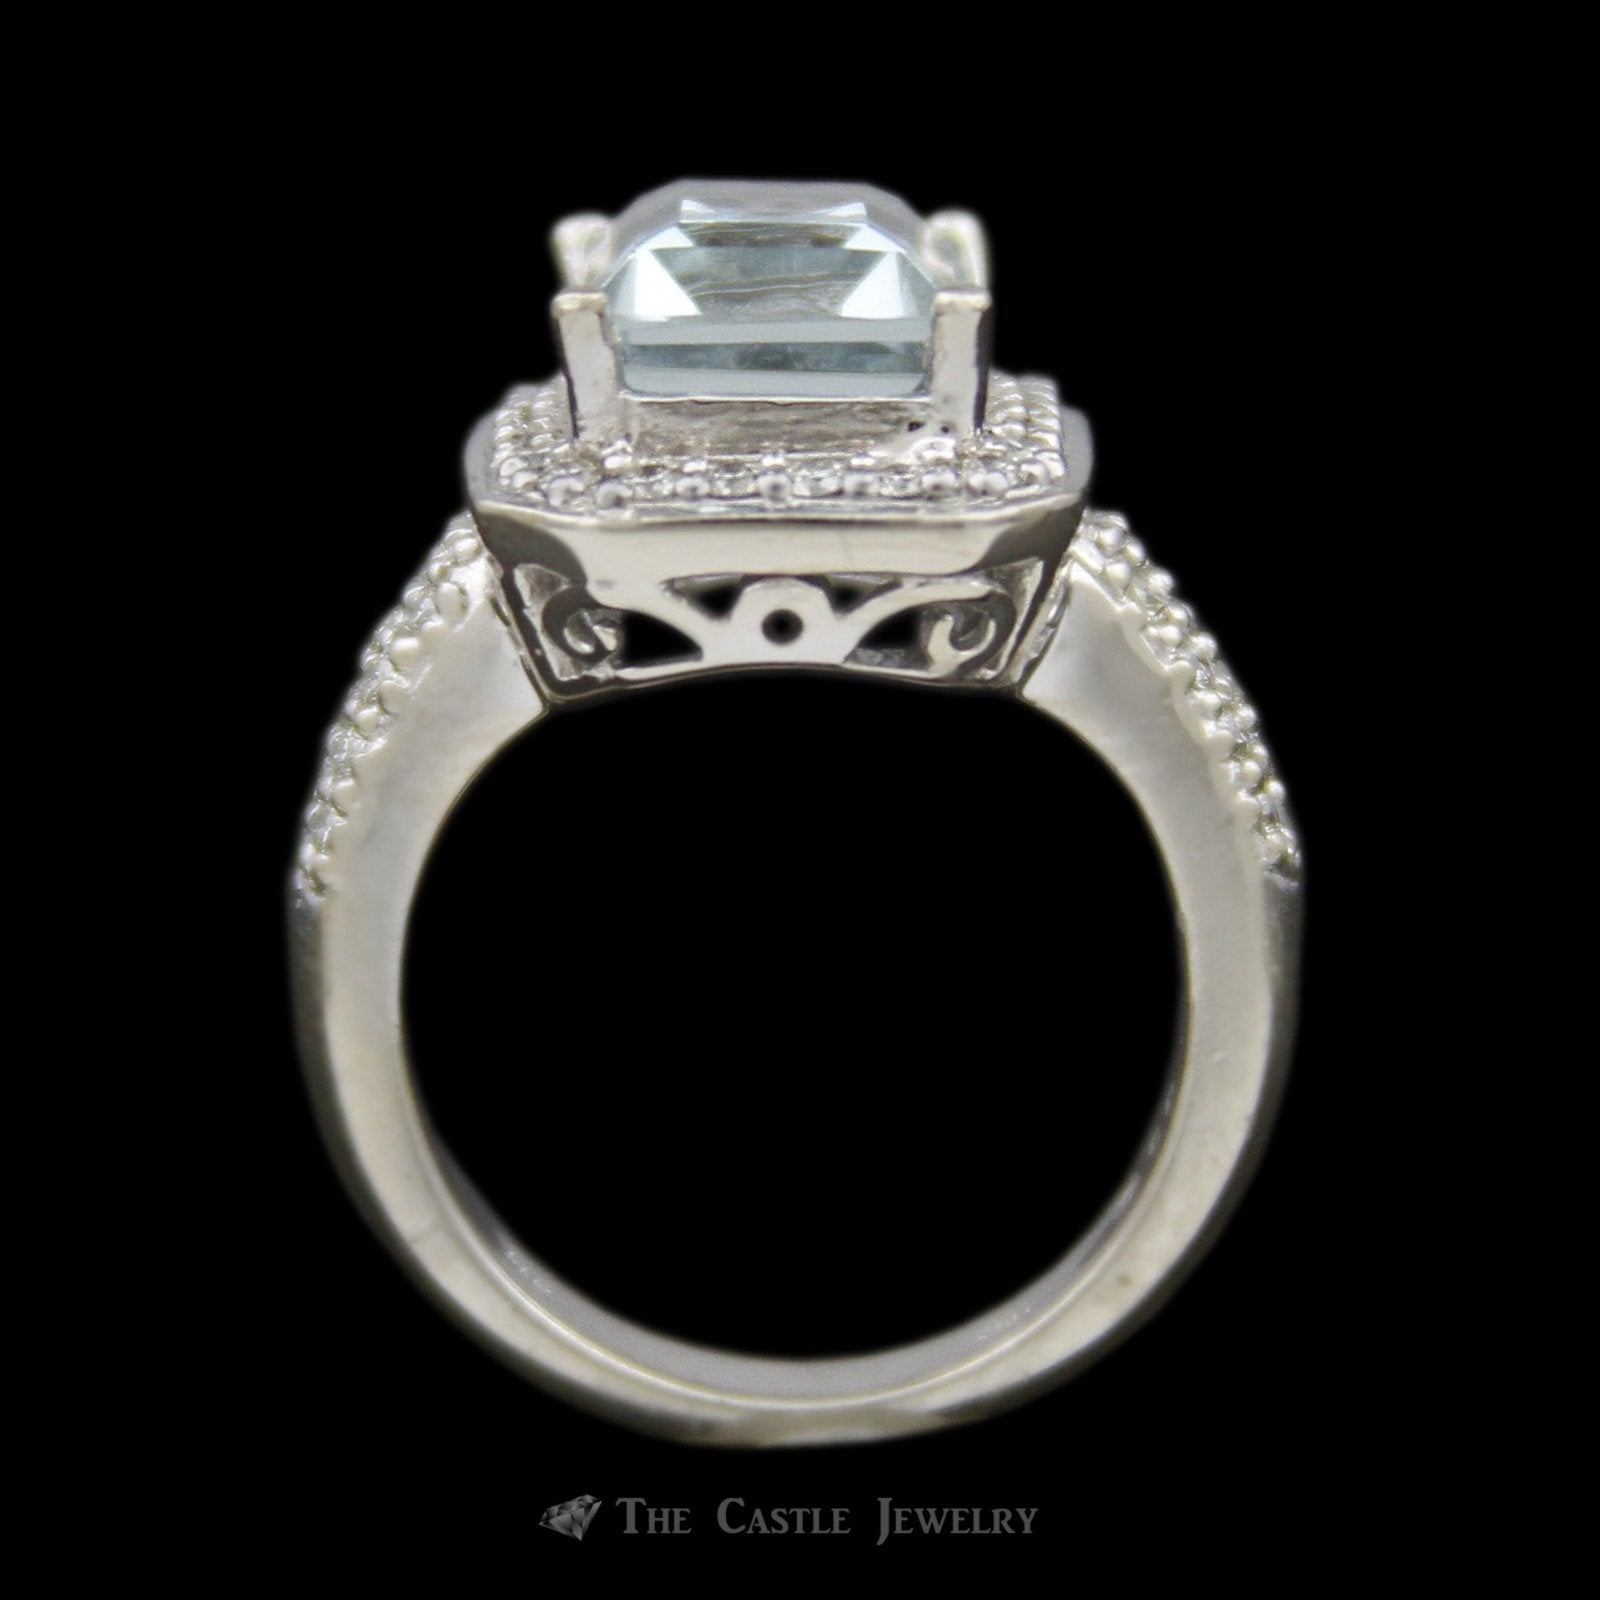 Emerald Cut 4.21ct Aquamarine Ring w/ Round Brilliant Cut Diamond Bezel & Sides in 14k White Gold-1